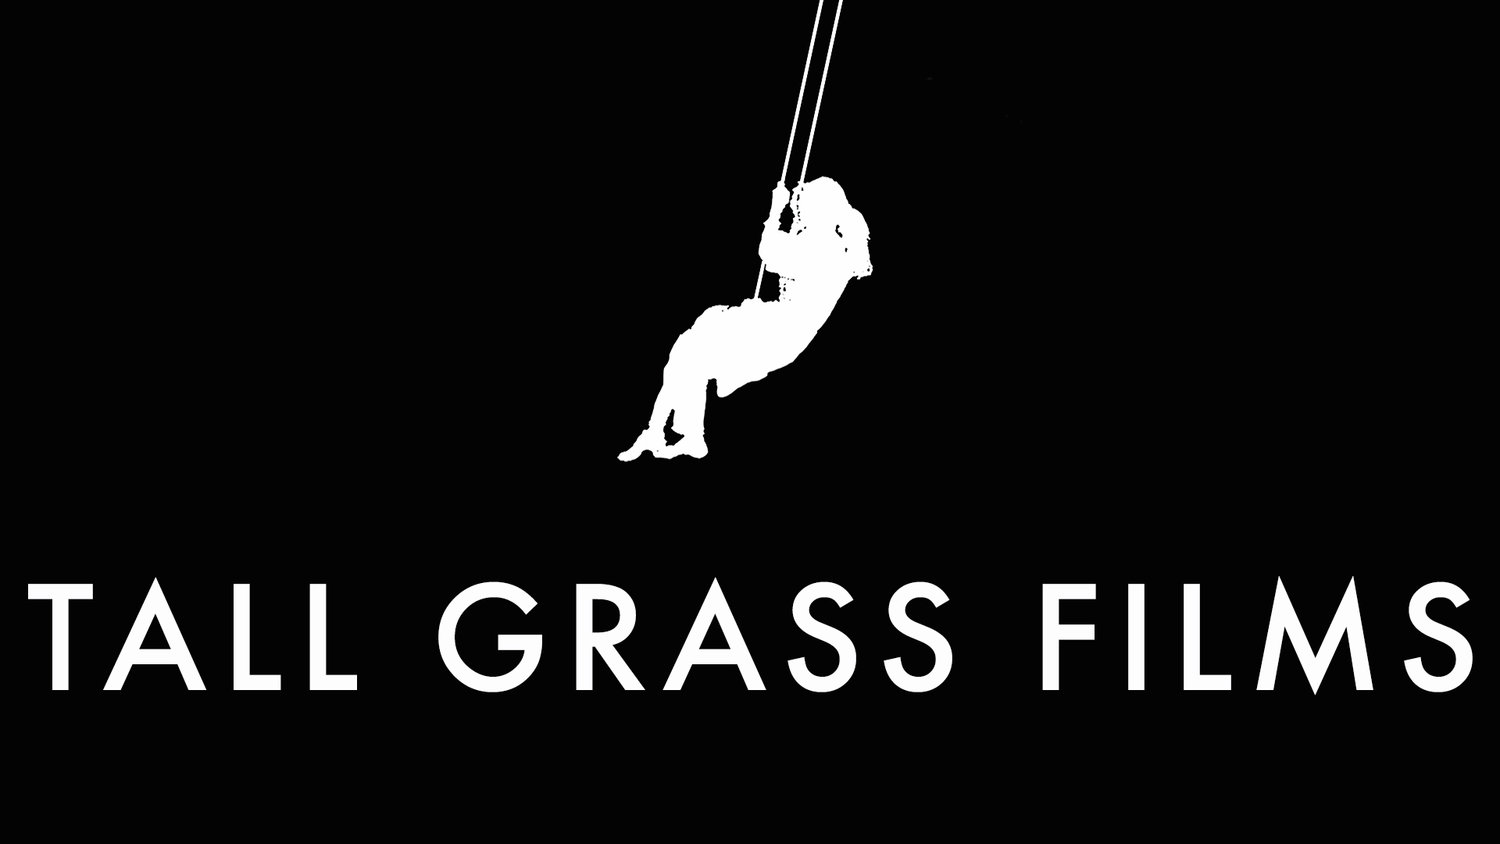 TALL GRASS FILMS